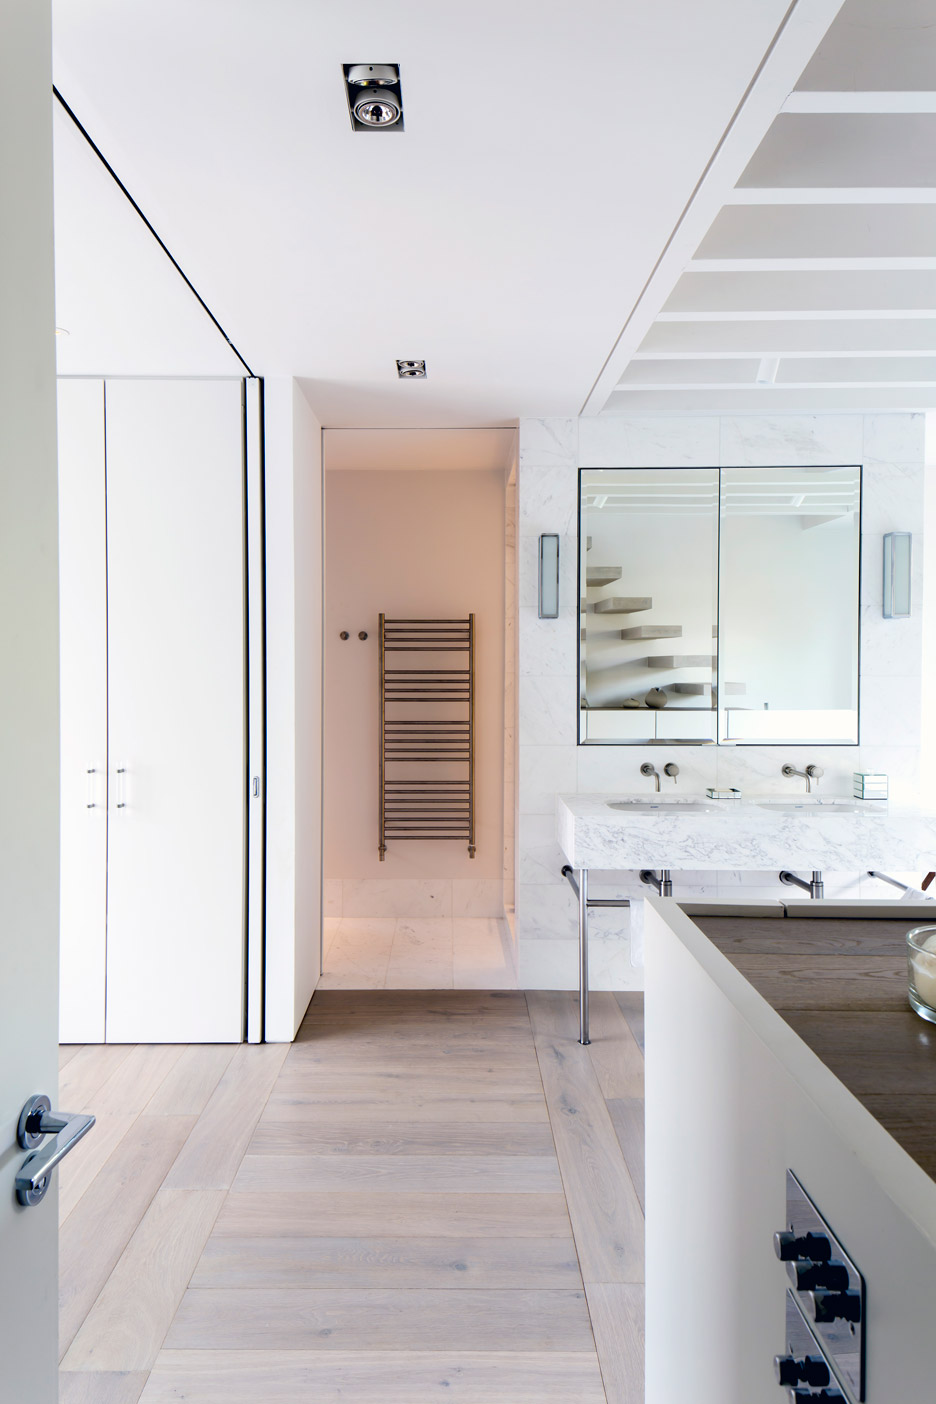 London house extension by alexander martin features a for Bathroom window height from floor